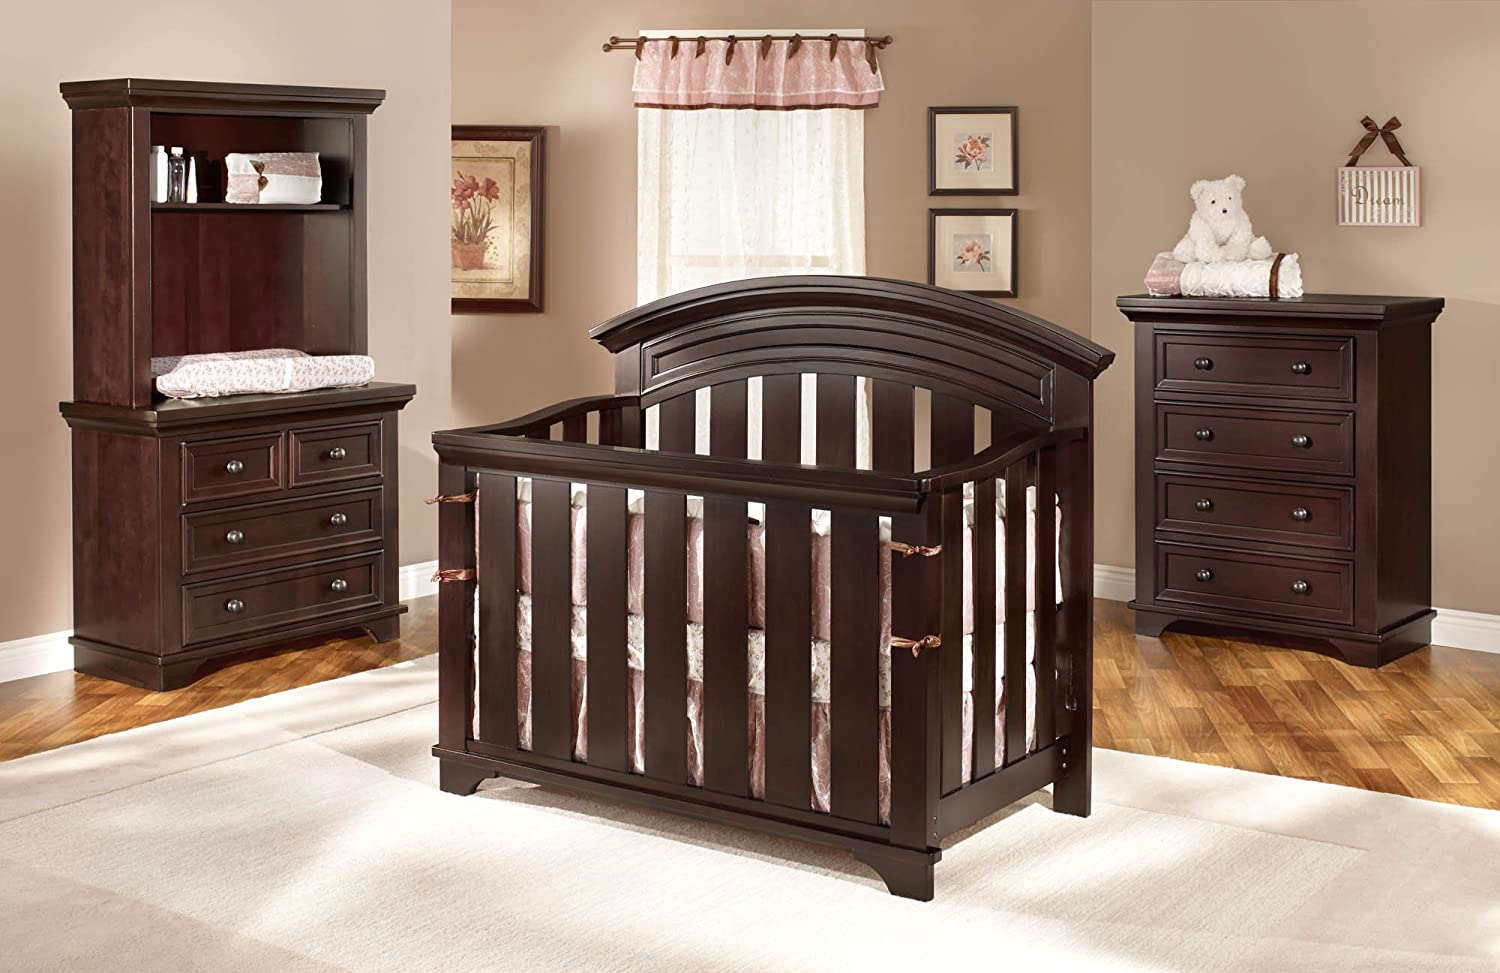 westwood in awesome full princeton size brushed inspirational ideas furniture verona foundry crib design cribs cherry convertible unique sorelle pewter of changer